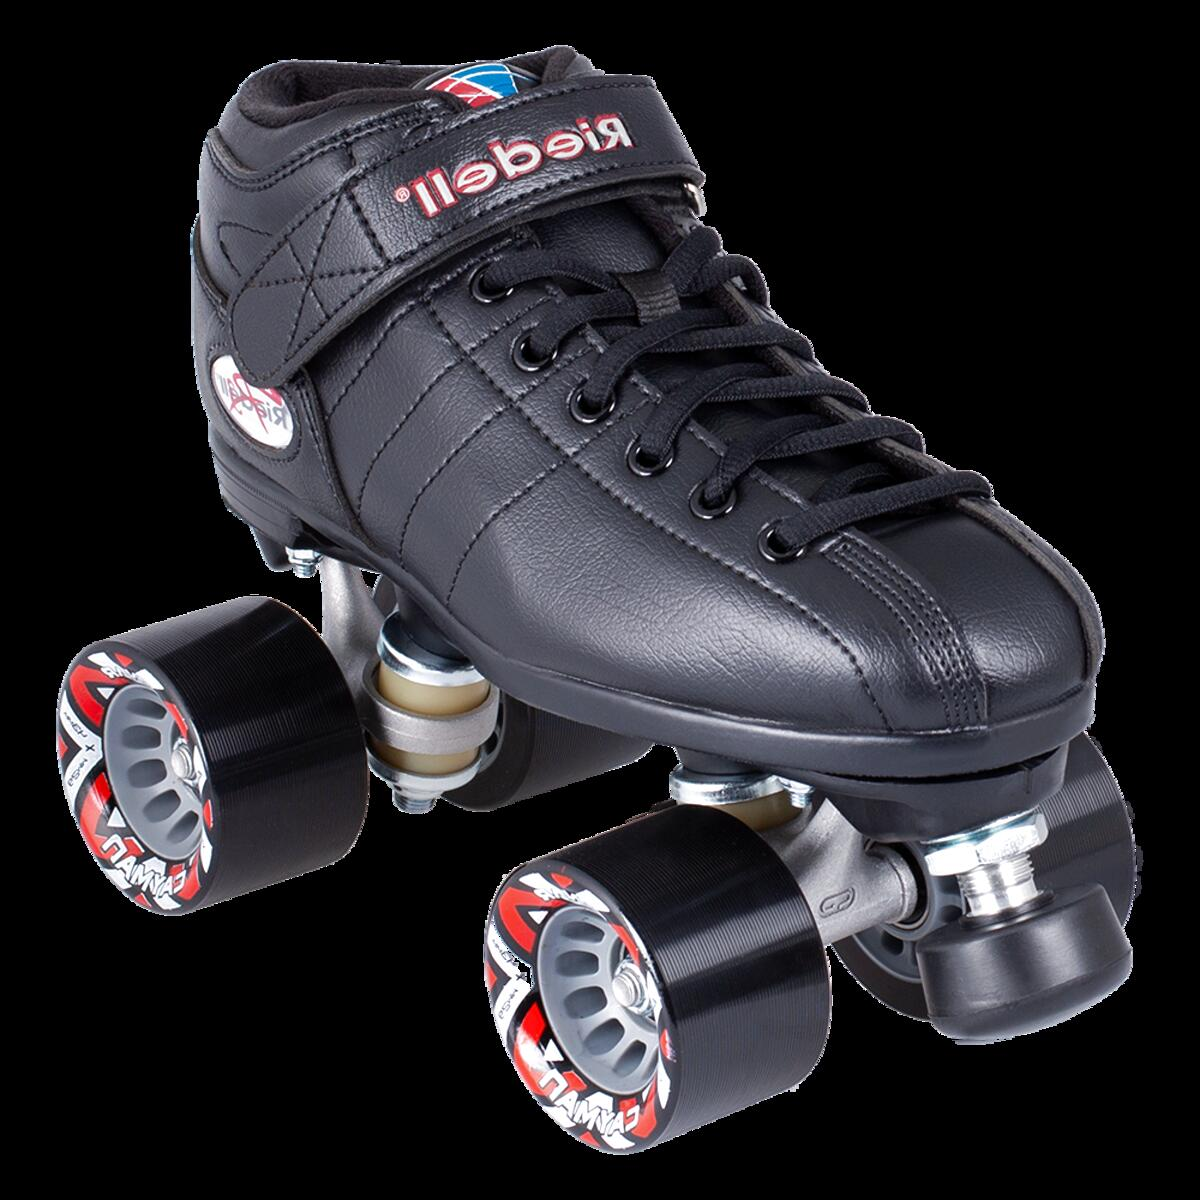 riedell r3 skates for sale